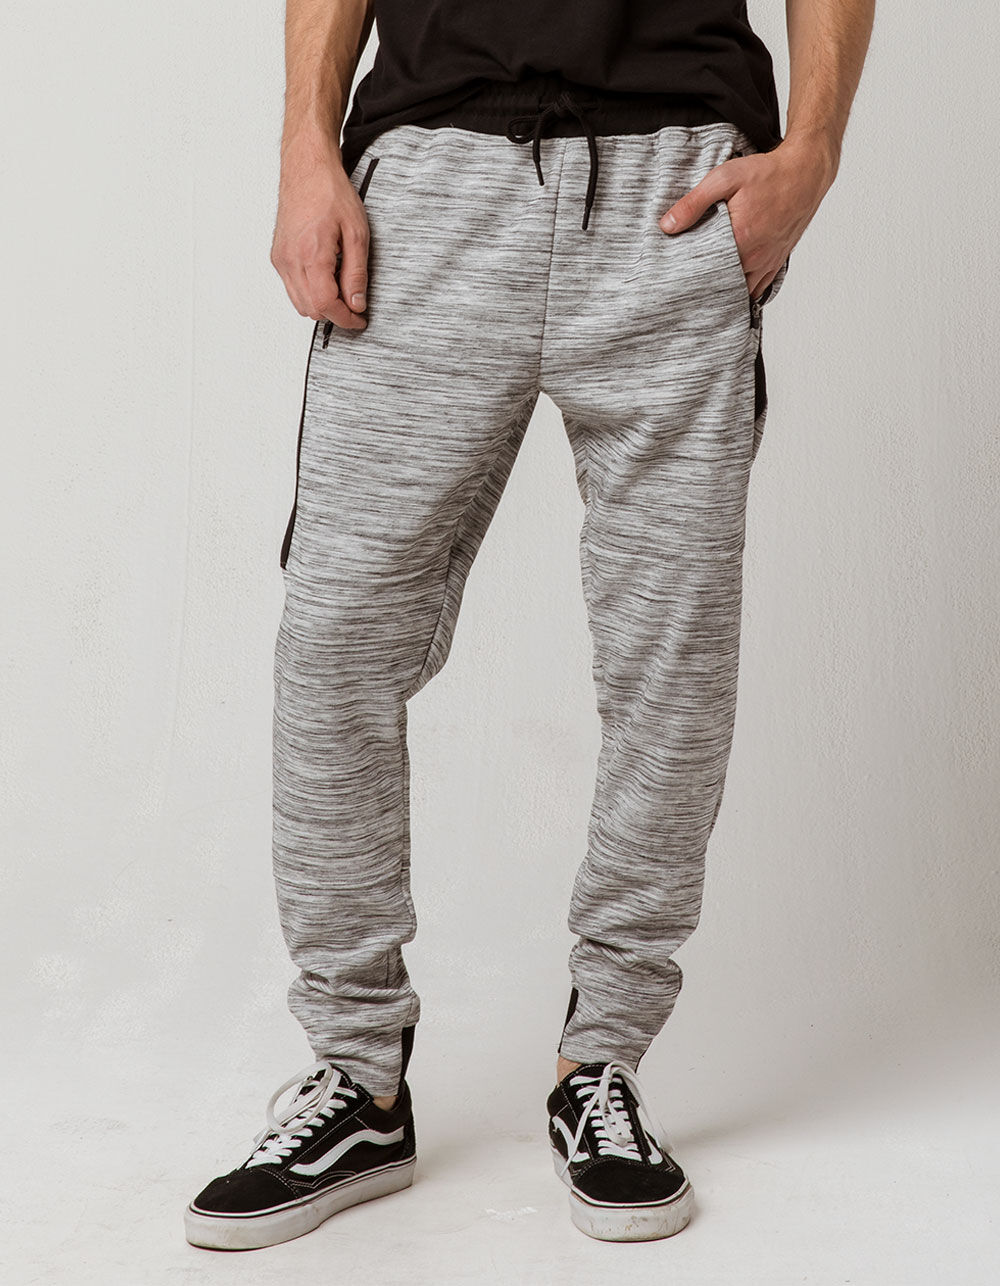 BROOKLYN CLOTH Light Grey Jogger Pants